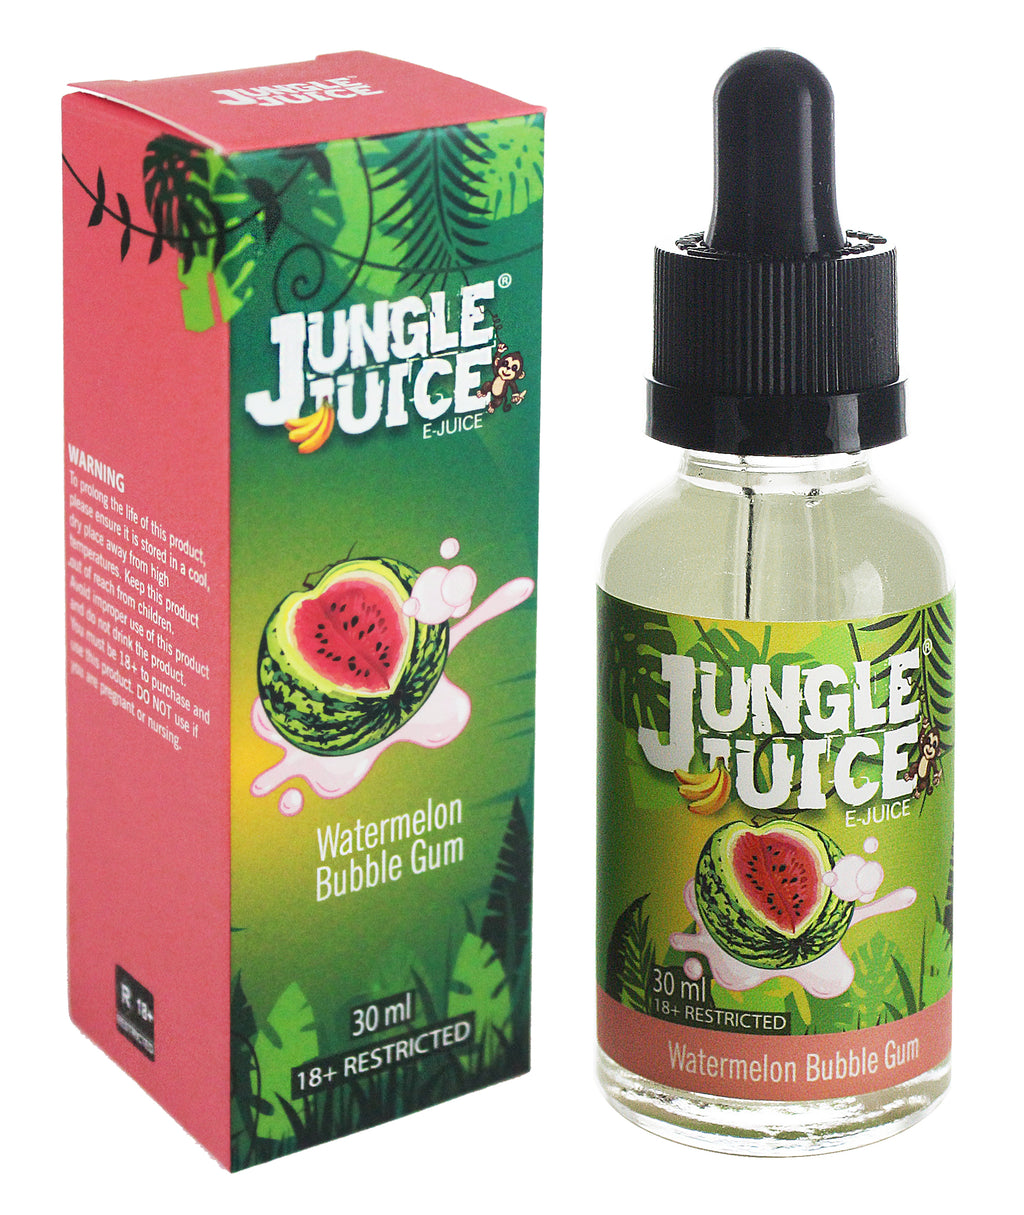 Jungle Juice - Watermelon Bubble Gum E-Juice